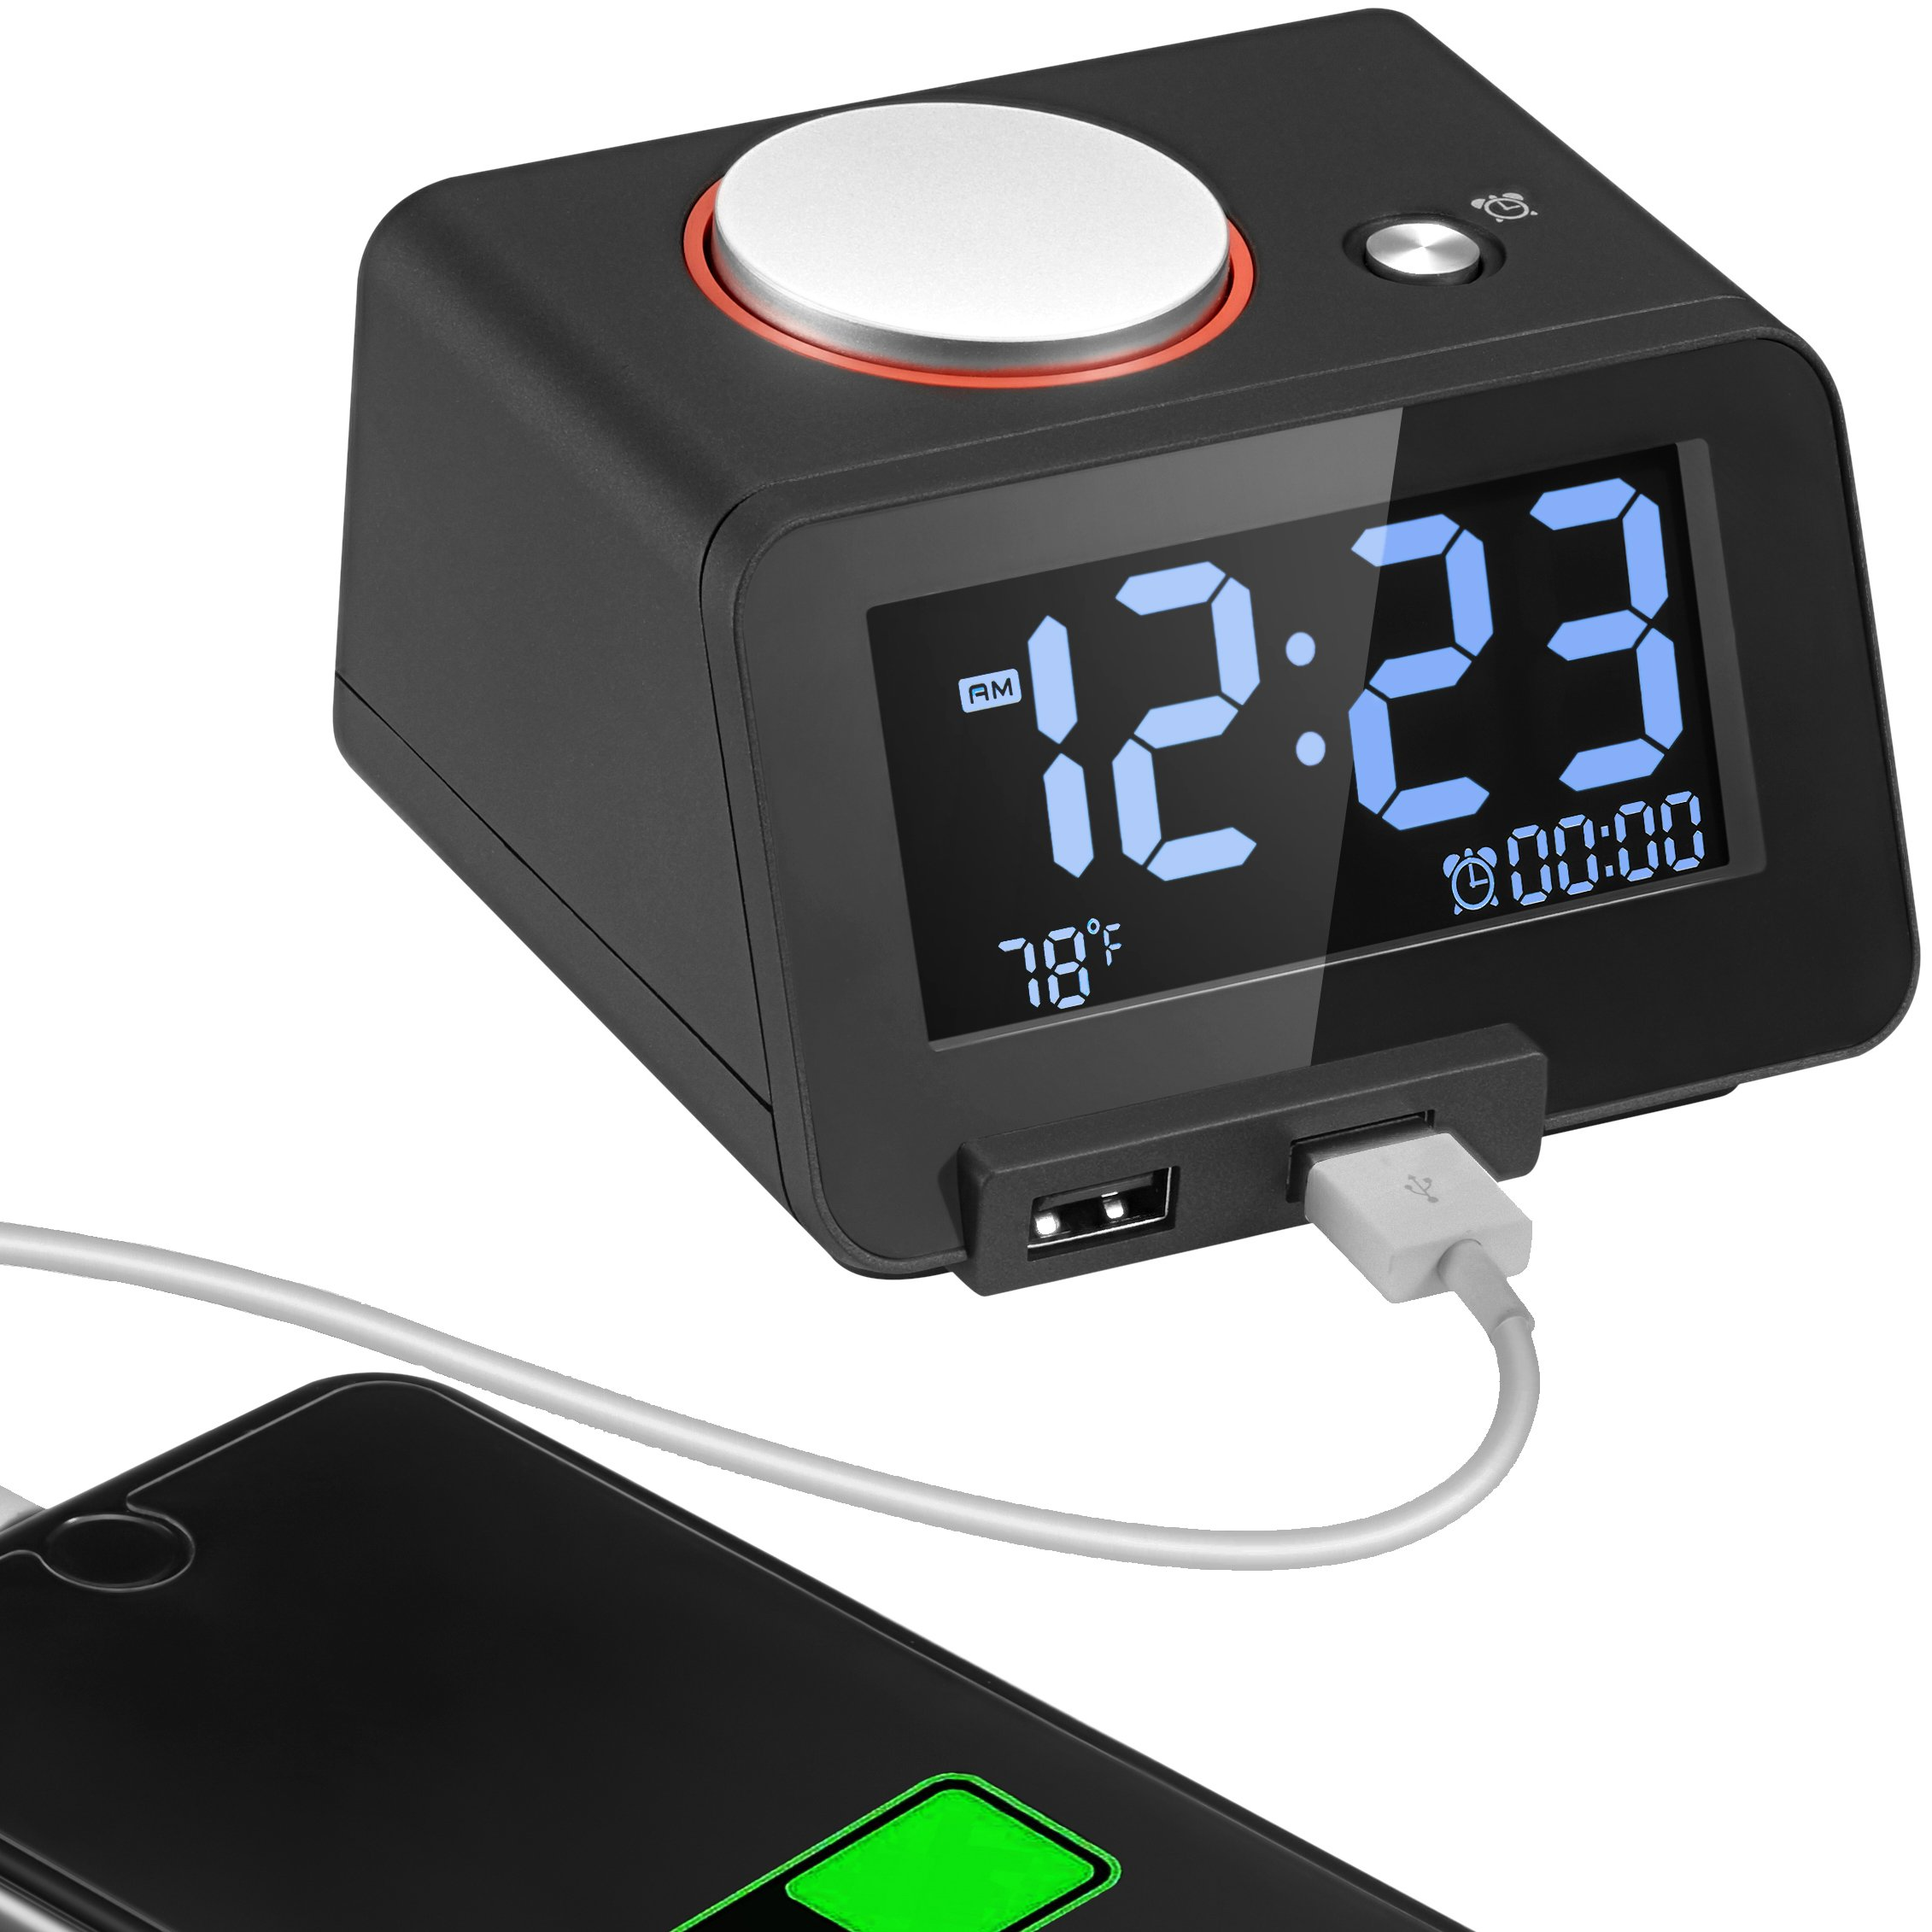 Homtime Alarm Clock USB Charger for Bedroom,2 USB Charging Ports Phone Charger for Iphone and Android,Snooze Fuction, 4 Dimmer Larger Font Display and Temperrature [Upgraded Version](Black)